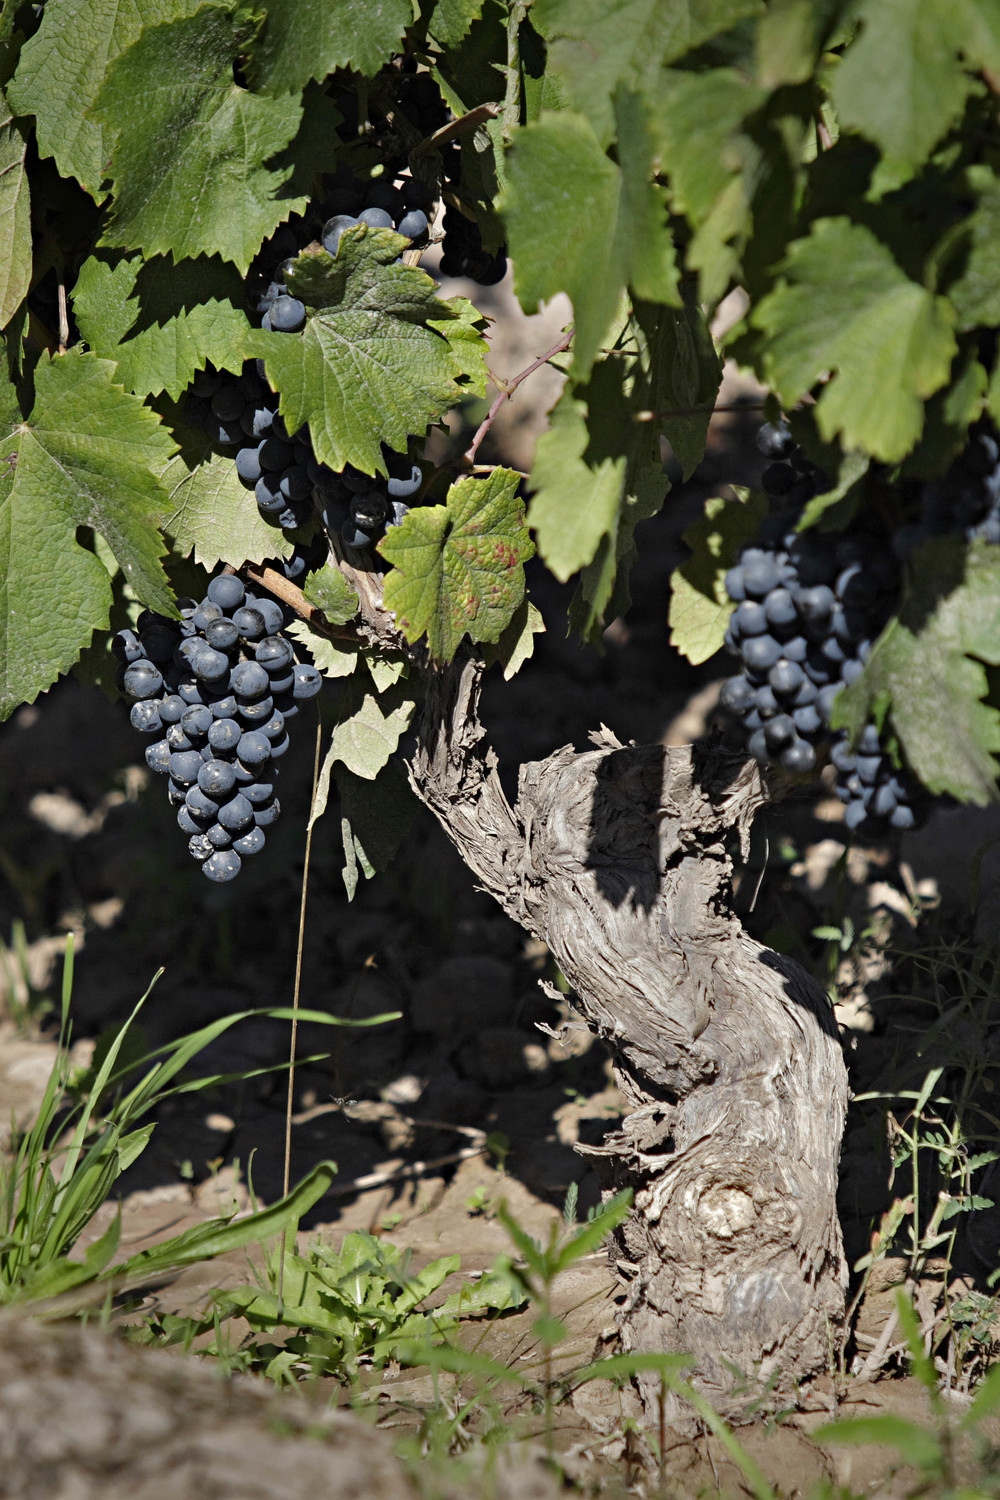 Photo_Ksana_Vineyard01.jpg